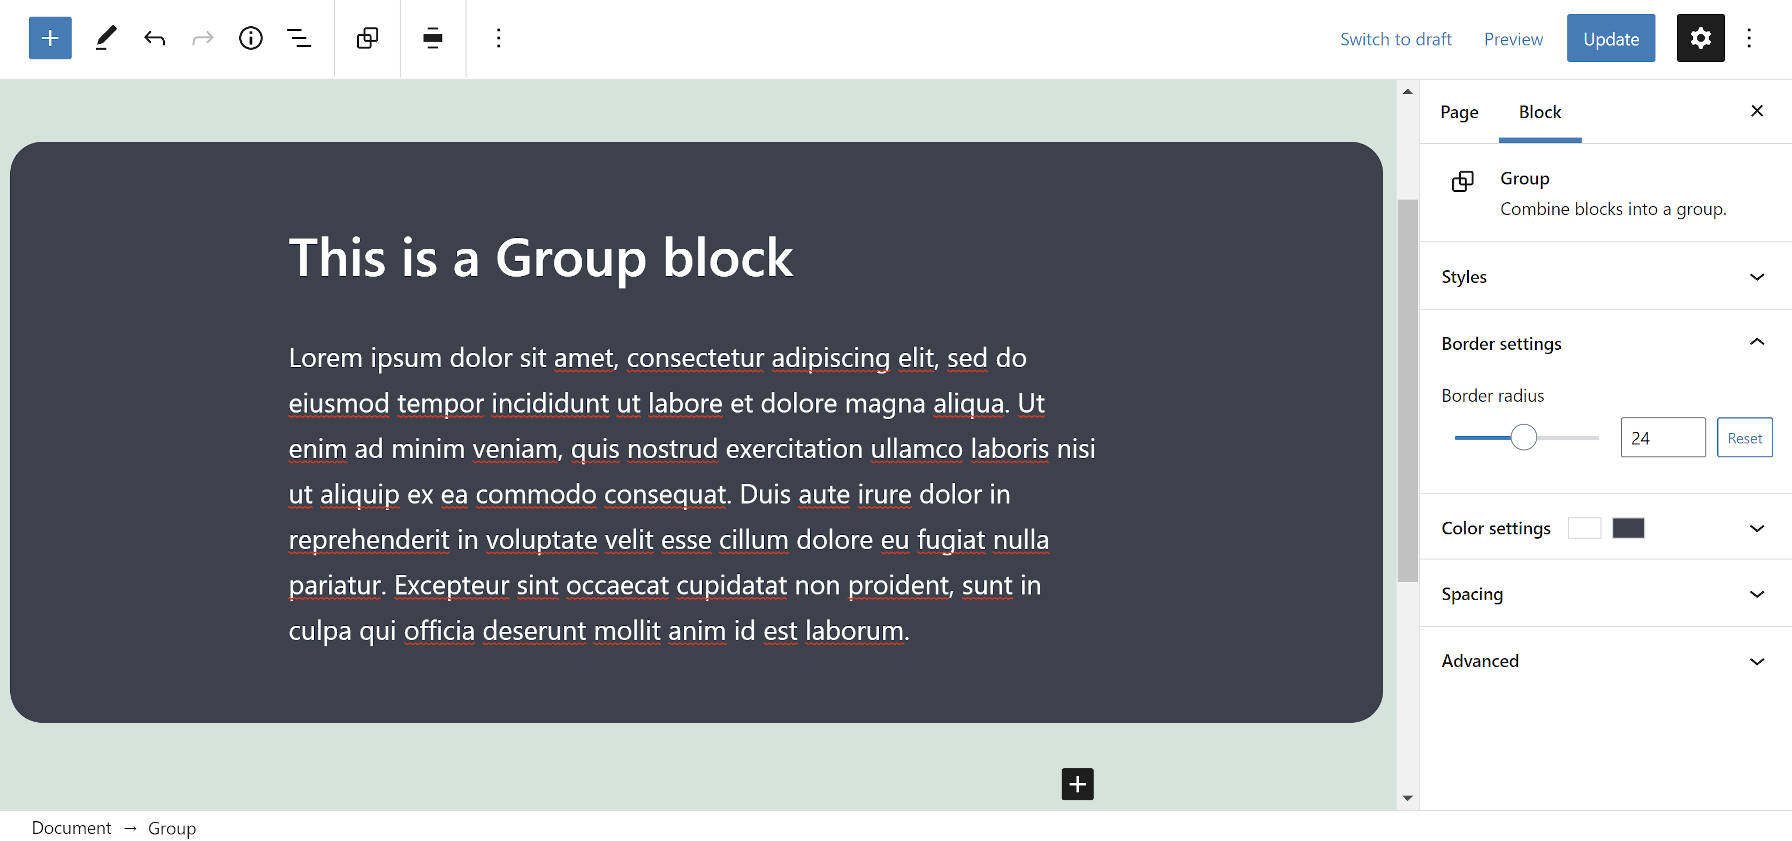 Group block in the editor with rounded borders.